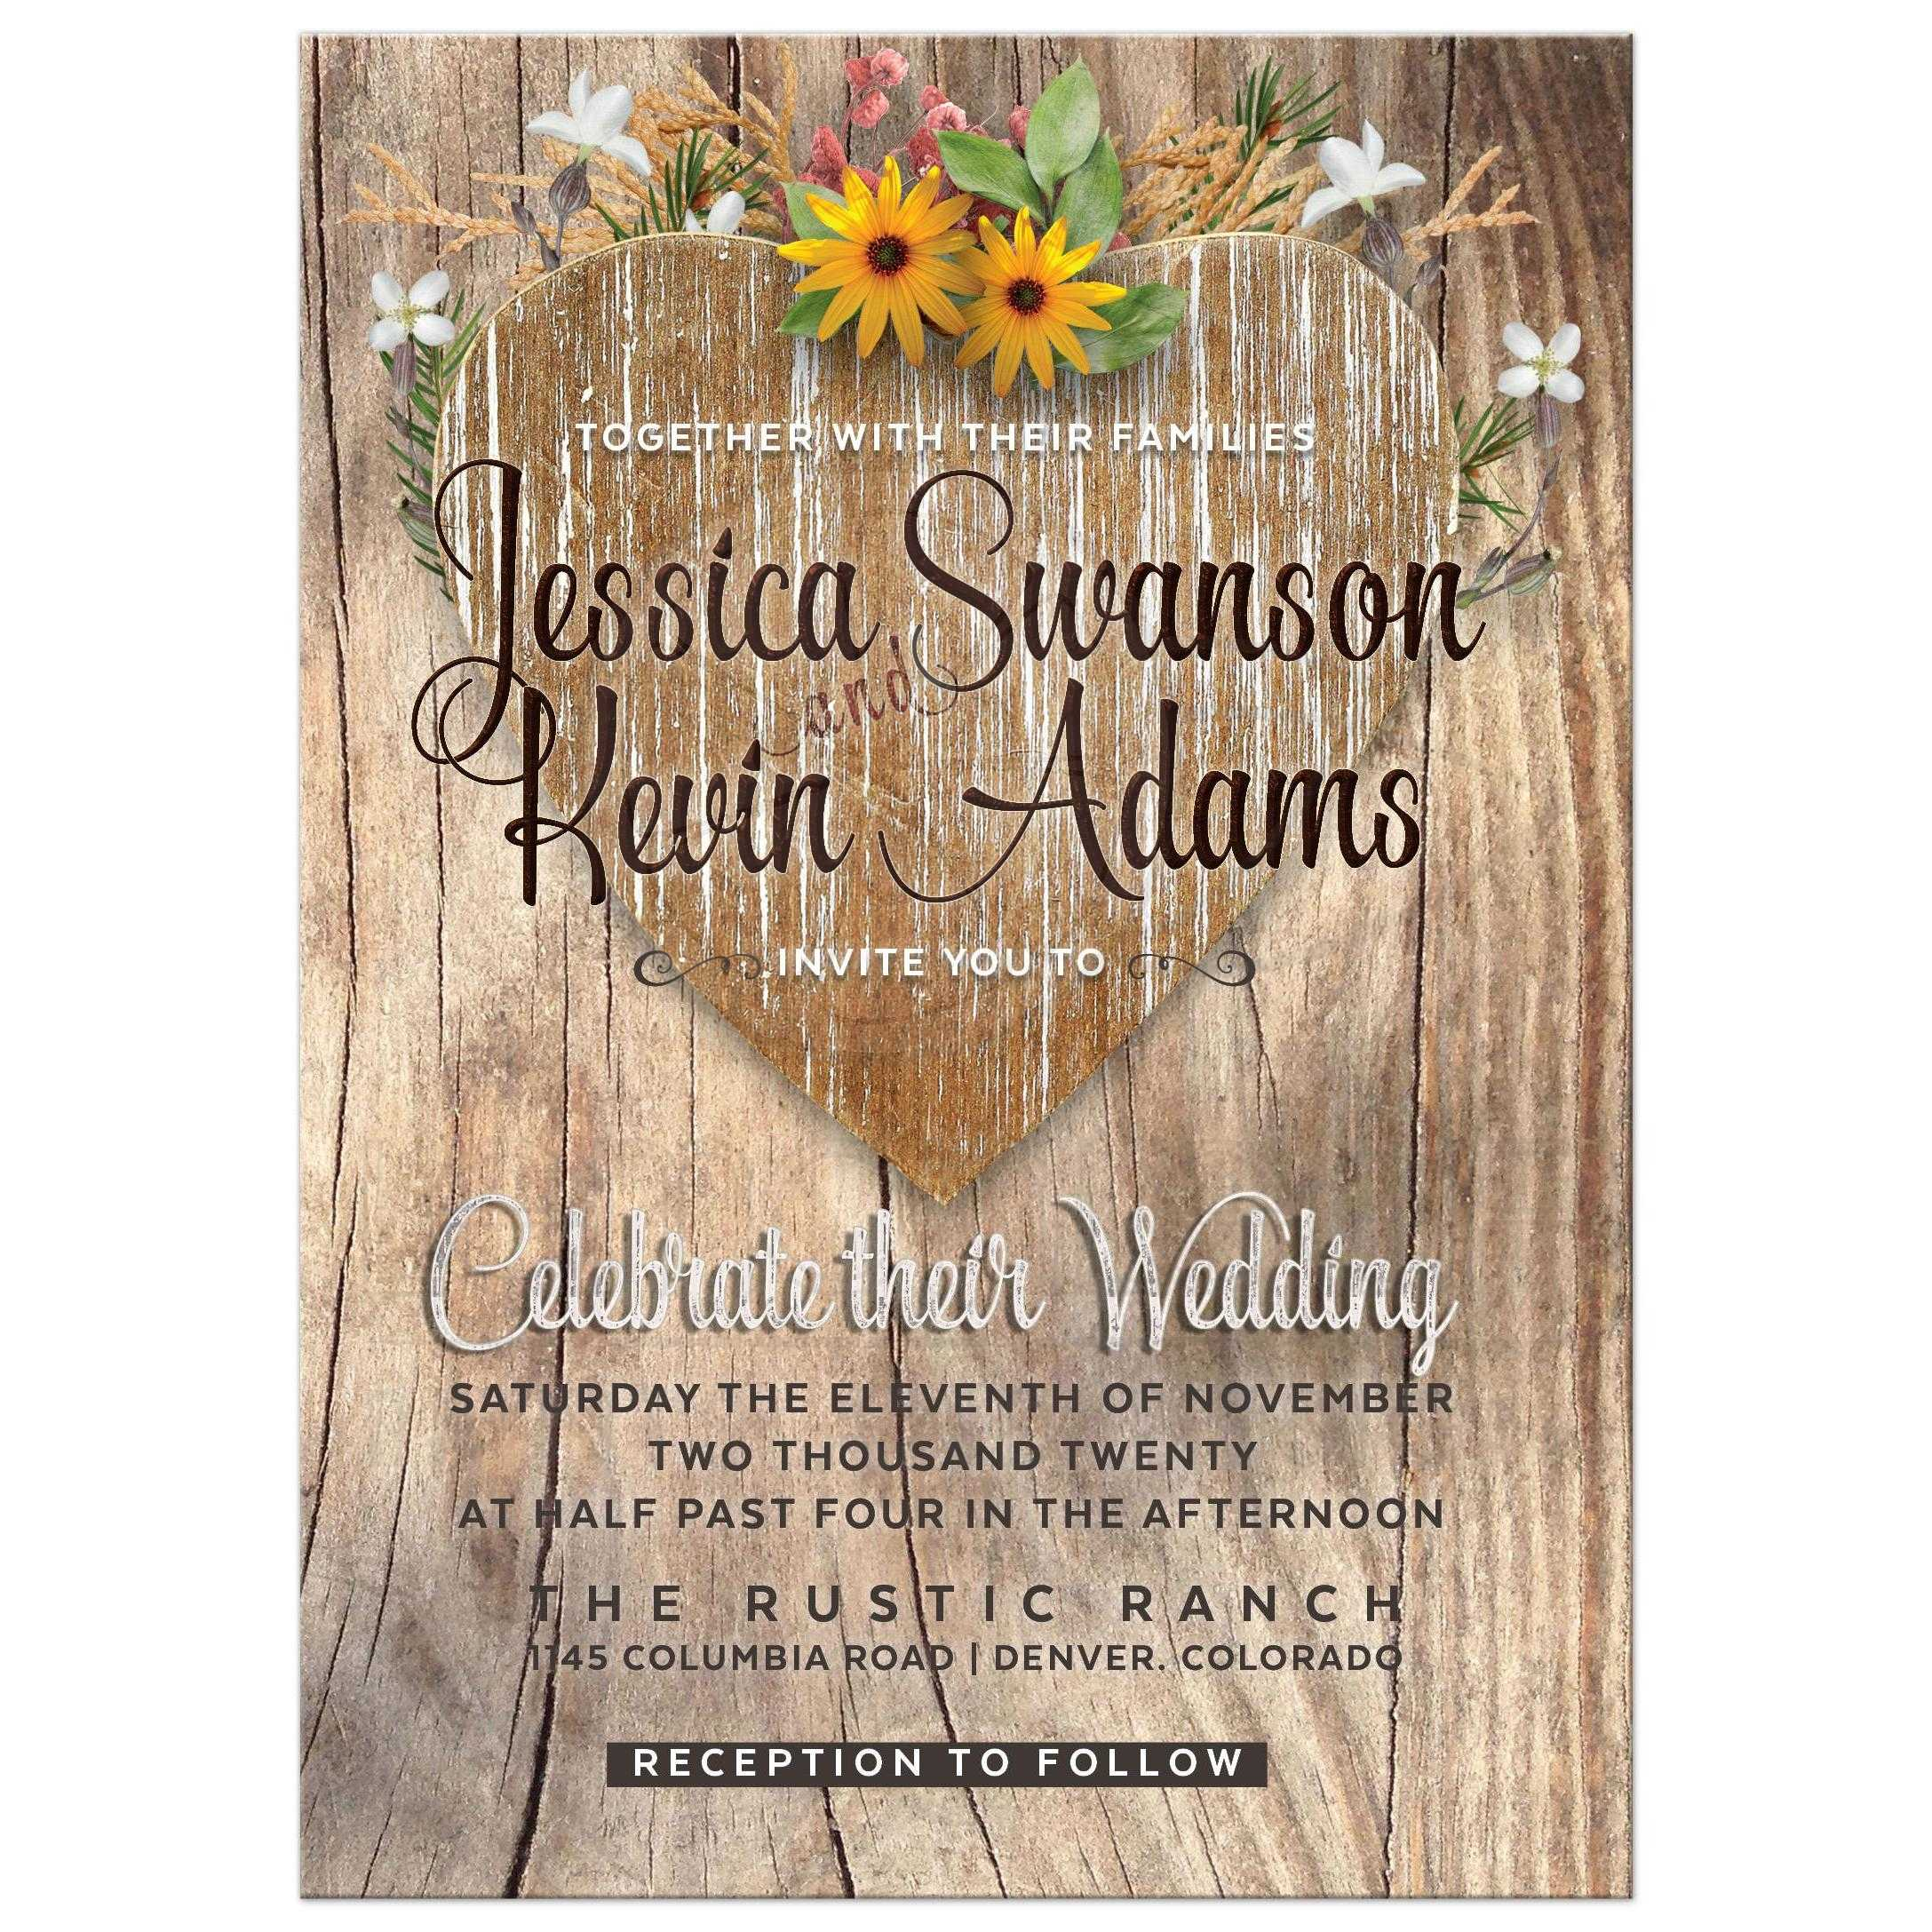 Teal Love Heart Wildflowers Rustic Timber Wedding Invitation Love Heart Wildflowers Rustic Wedding Invitation Rustic Wedding Invitations Rsvp Rustic Wedding Invitations Etsy wedding Rustic Wedding Invitations